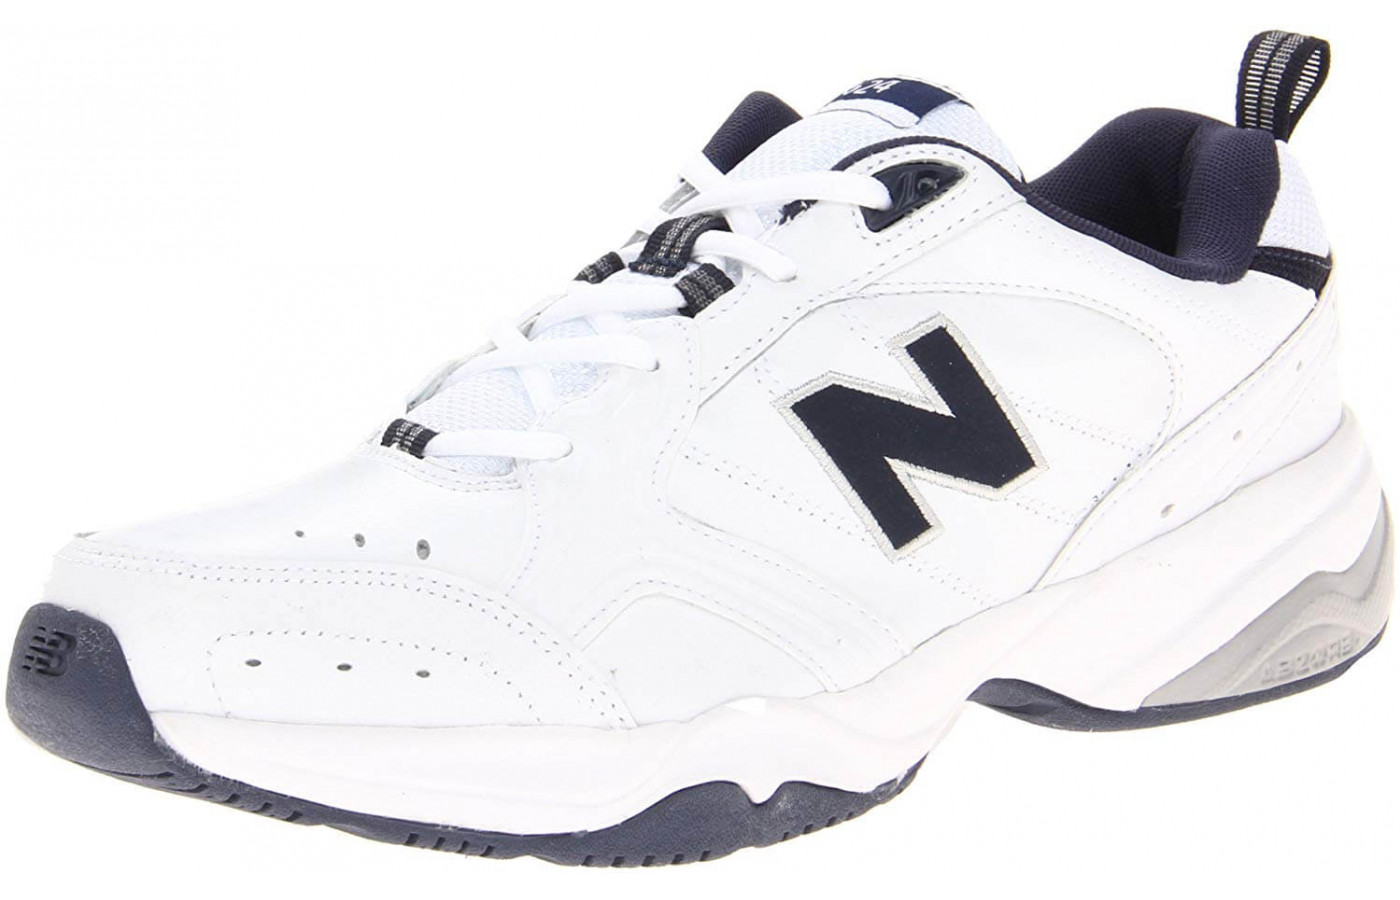 New Balance 624 Feature Image